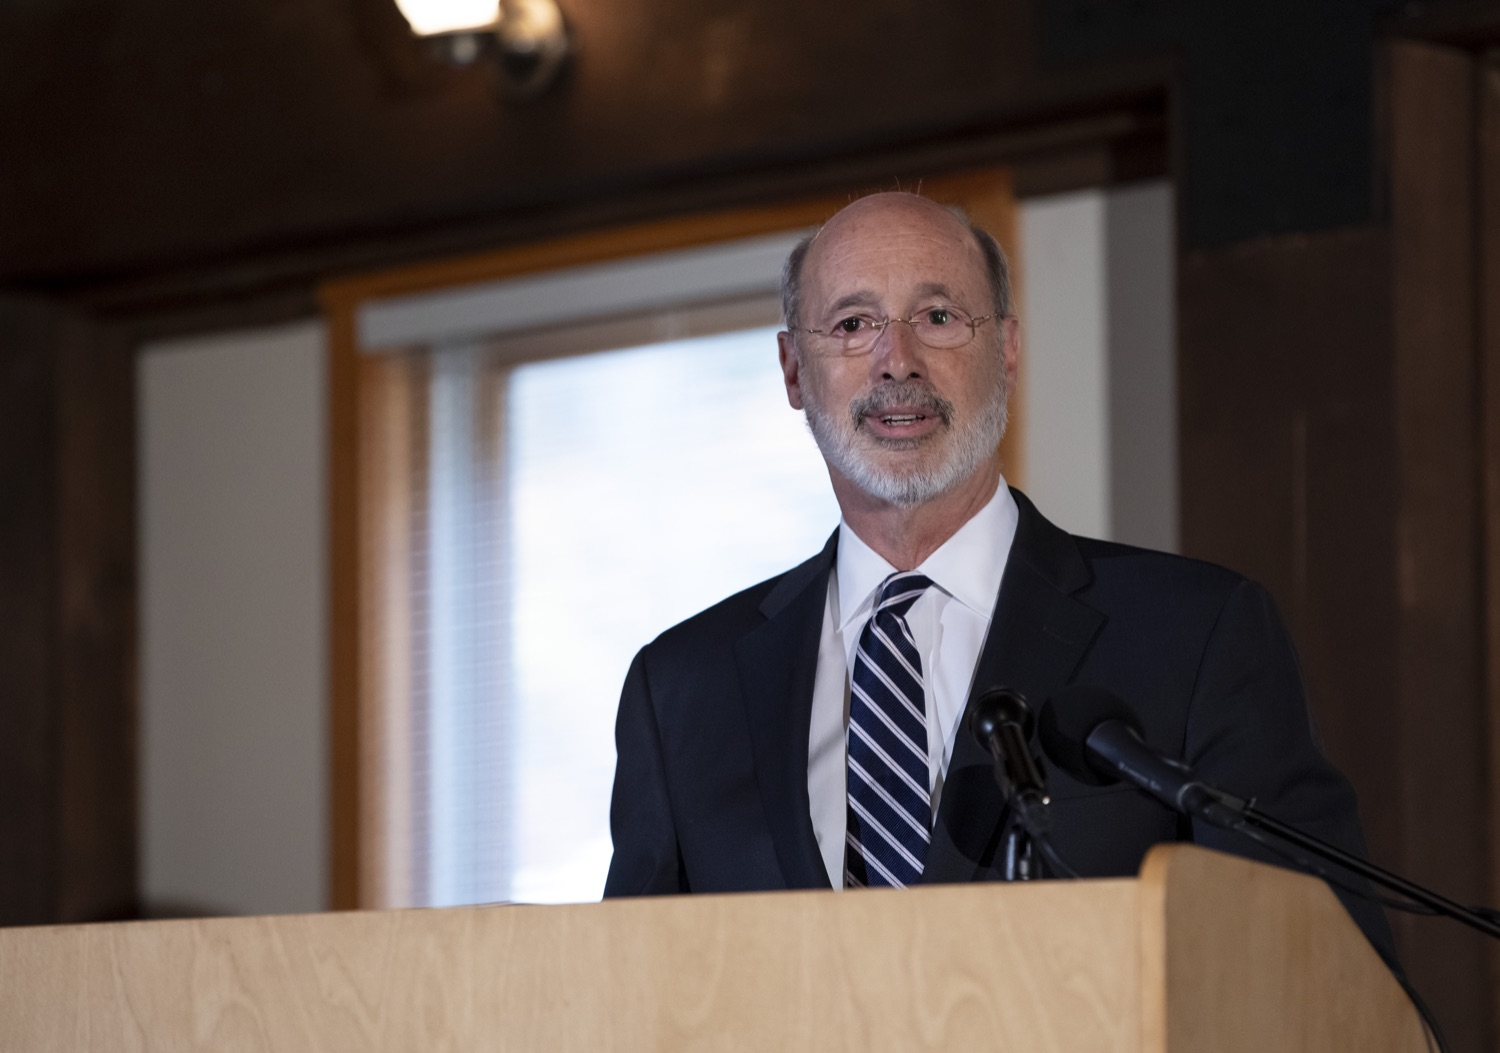 """<a href=""""https://filesource.wostreaming.net/commonwealthofpa/photo/17557_gov_dmva_rjw_003.jpg"""" target=""""_blank"""">⇣Download Photo<br></a>Governor Tom Wolf helped to honor two members inducted today into the Pennsylvania Department of Military and Veterans Affairs prestigious Hall of Fame, recognizing their exceptional service to the department that supports Pennsylvanias nearly 800,000 veterans and 18,000 members of the National Guard.  Chief Warrant Officer 5 (ret.) John K. Schreier of Selinsgrove, Snyder County; and John A. Brenner (posthumously) of Mt. Wolf, York County, are the 2019 inductees."""